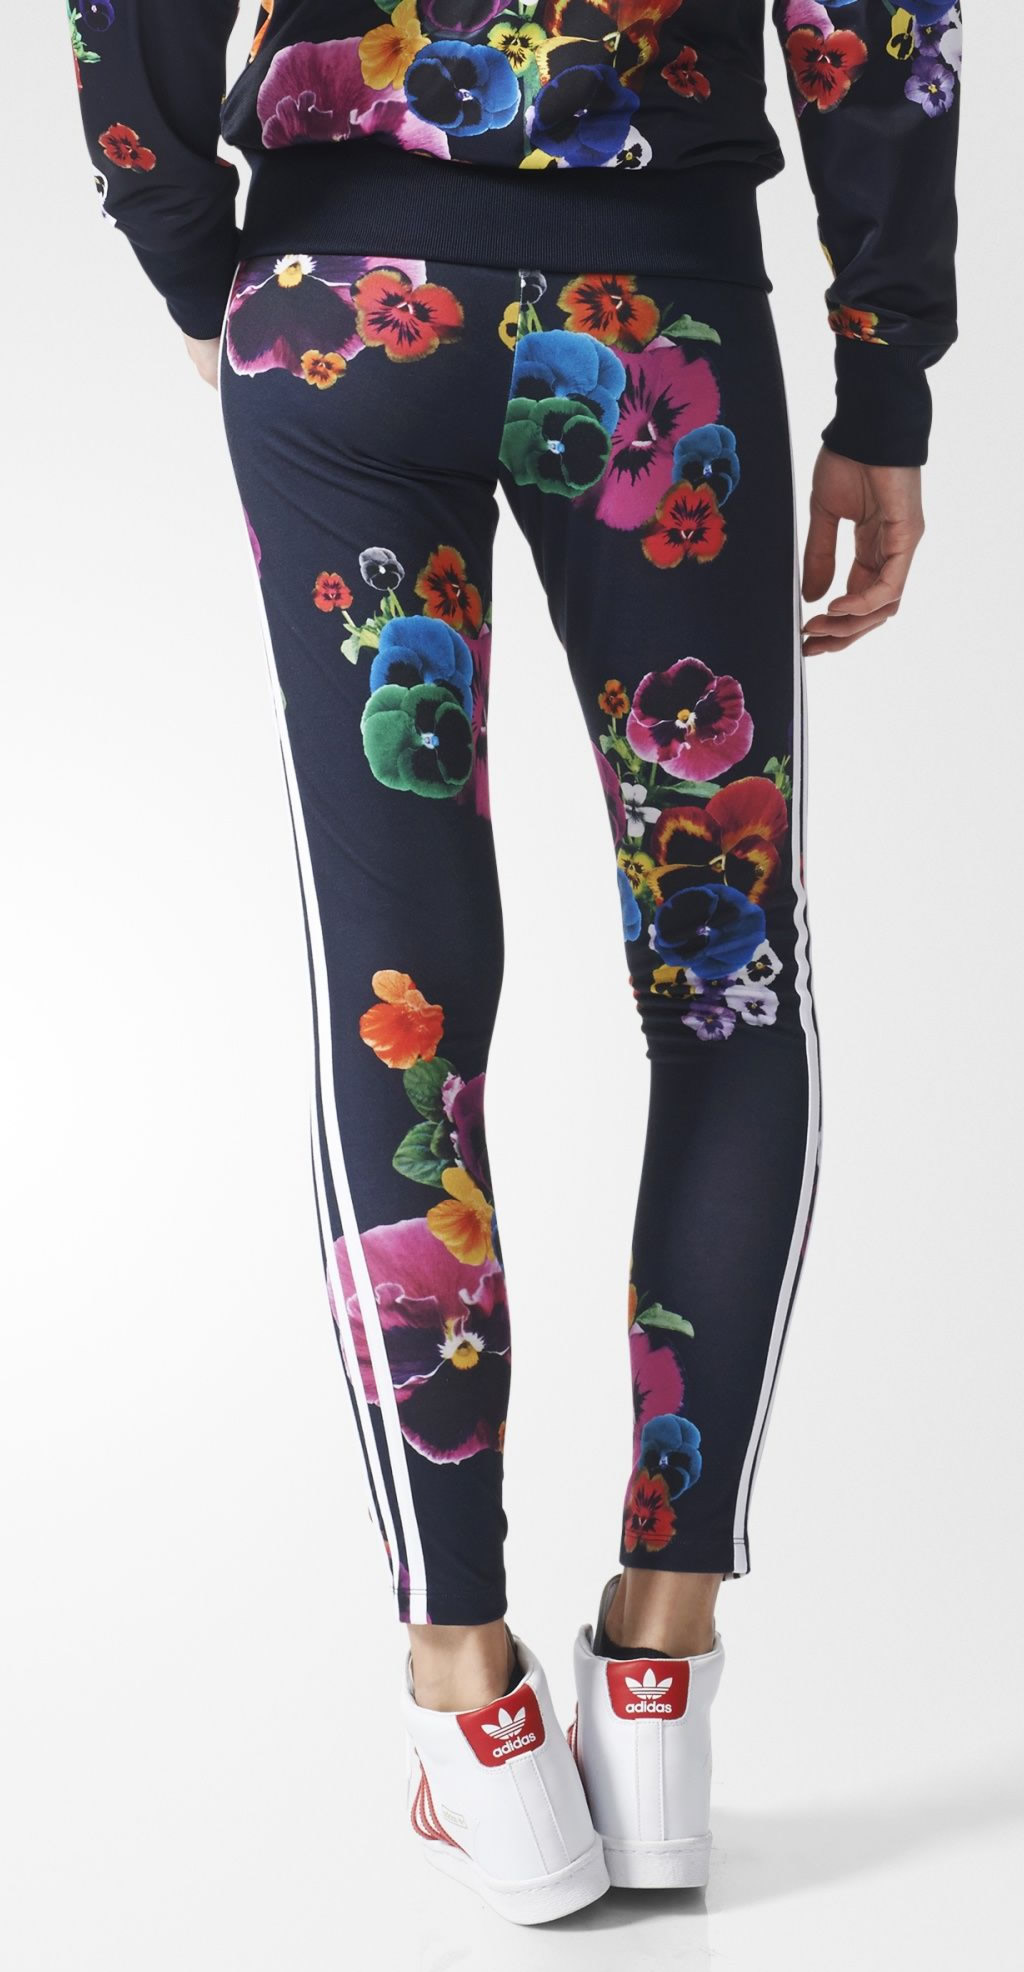 Shop the latest selection of womens adidas originals clothing at Lady Foot Locker. With stores across the nation, and some of the hottest brands and latest trends, Lady Footlocker makes it easy to find great footwear and apparel for women all in one place. adidas Originals Colorado Leggings Women's. $ $ Price reduced from $